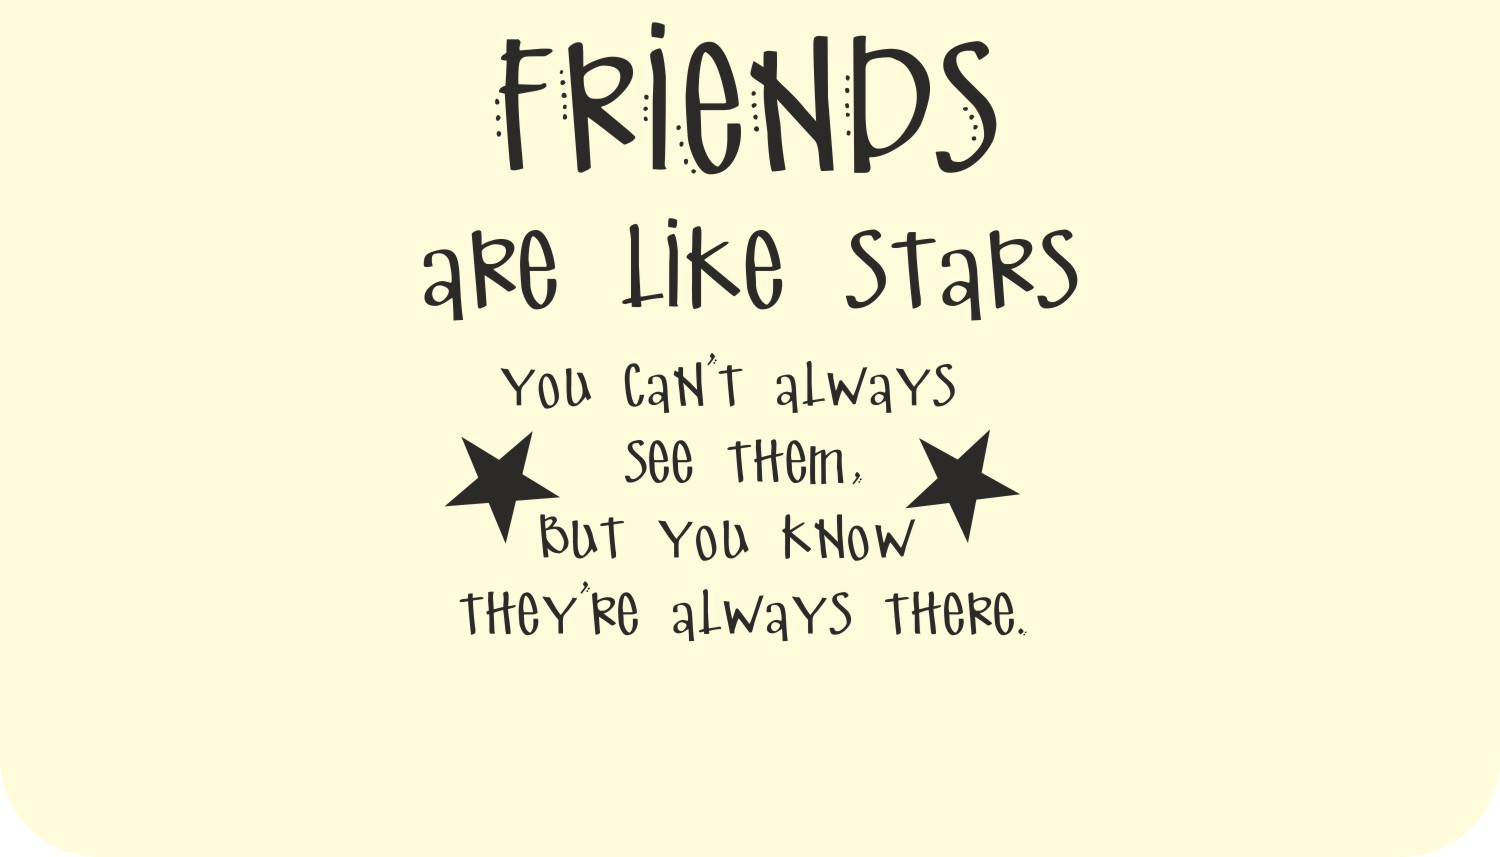 Togetherness Quotes And Sayings: Friendship Vinyl Quotes. QuotesGram